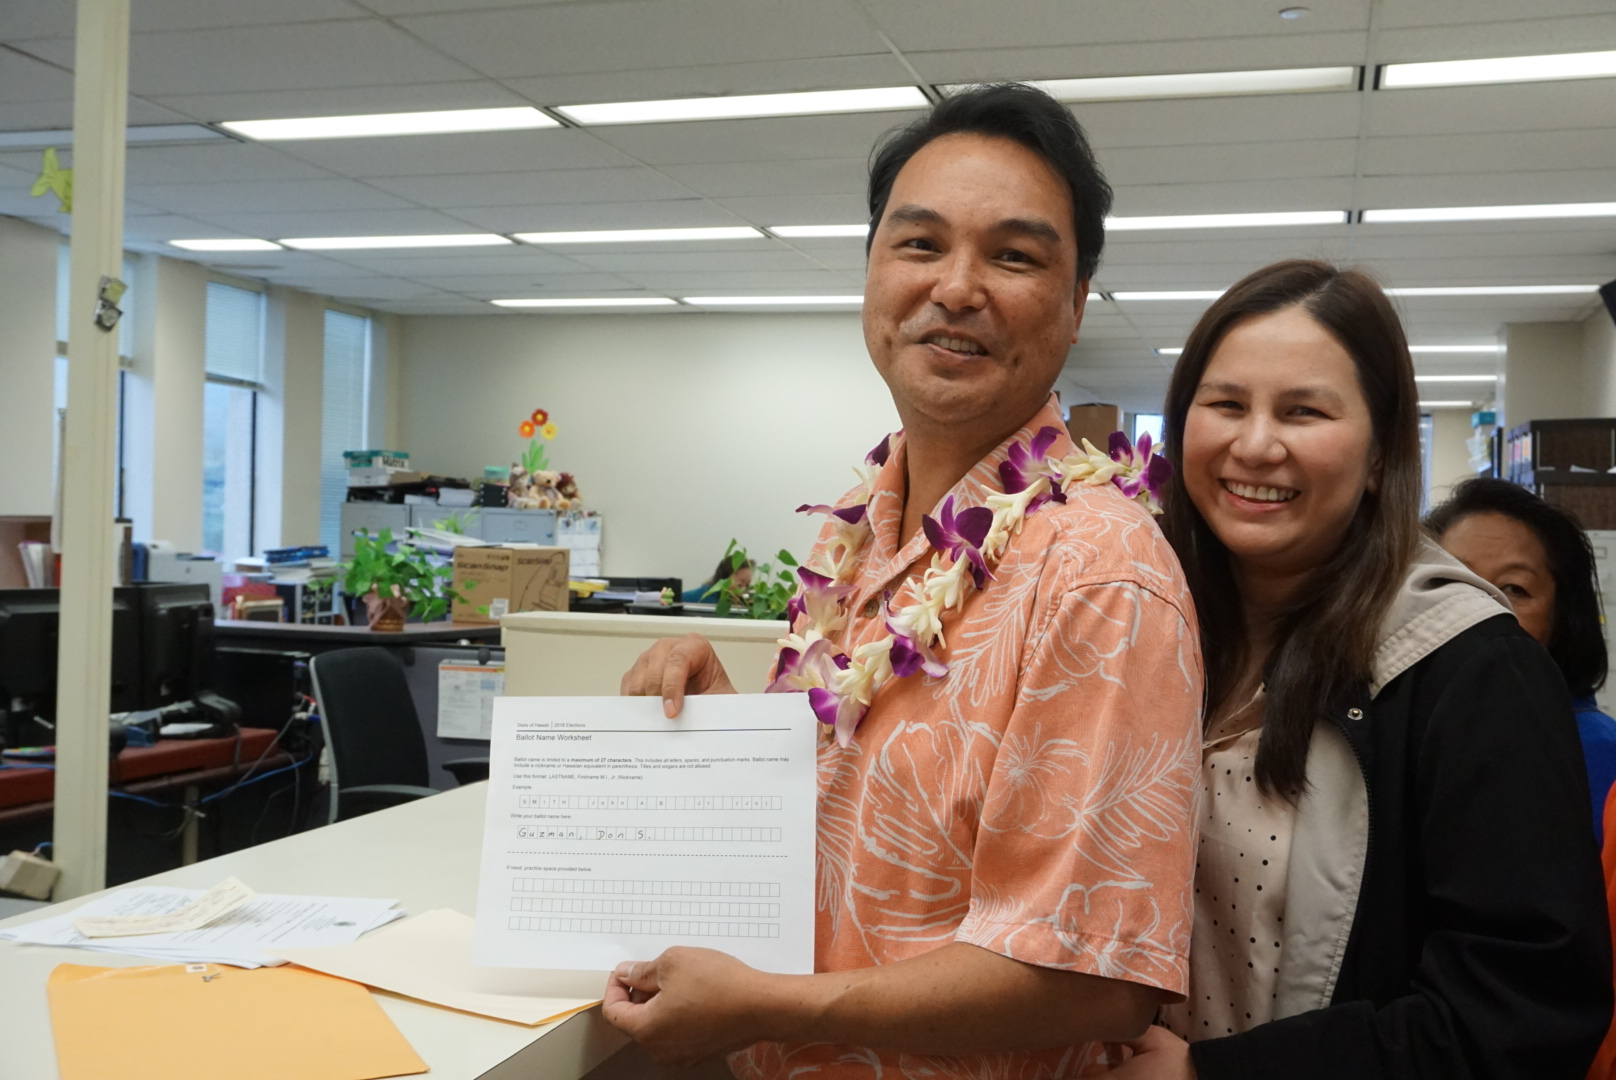 Councilmember Guzman Files For Maui Mayor's Race